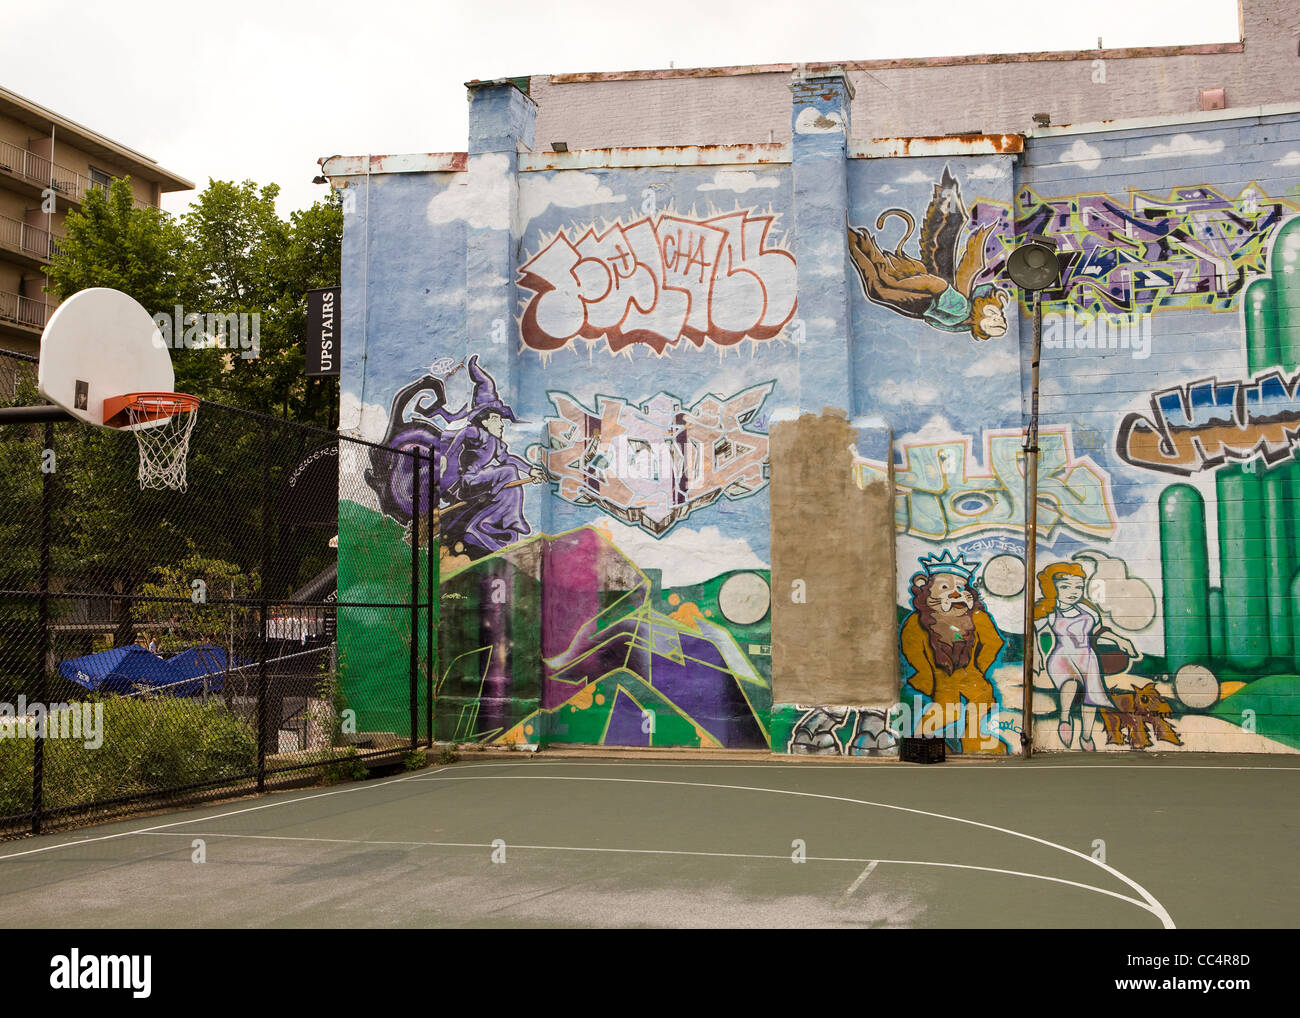 Street art graffiti painted on wall next to outdoor for Basketball court wall mural